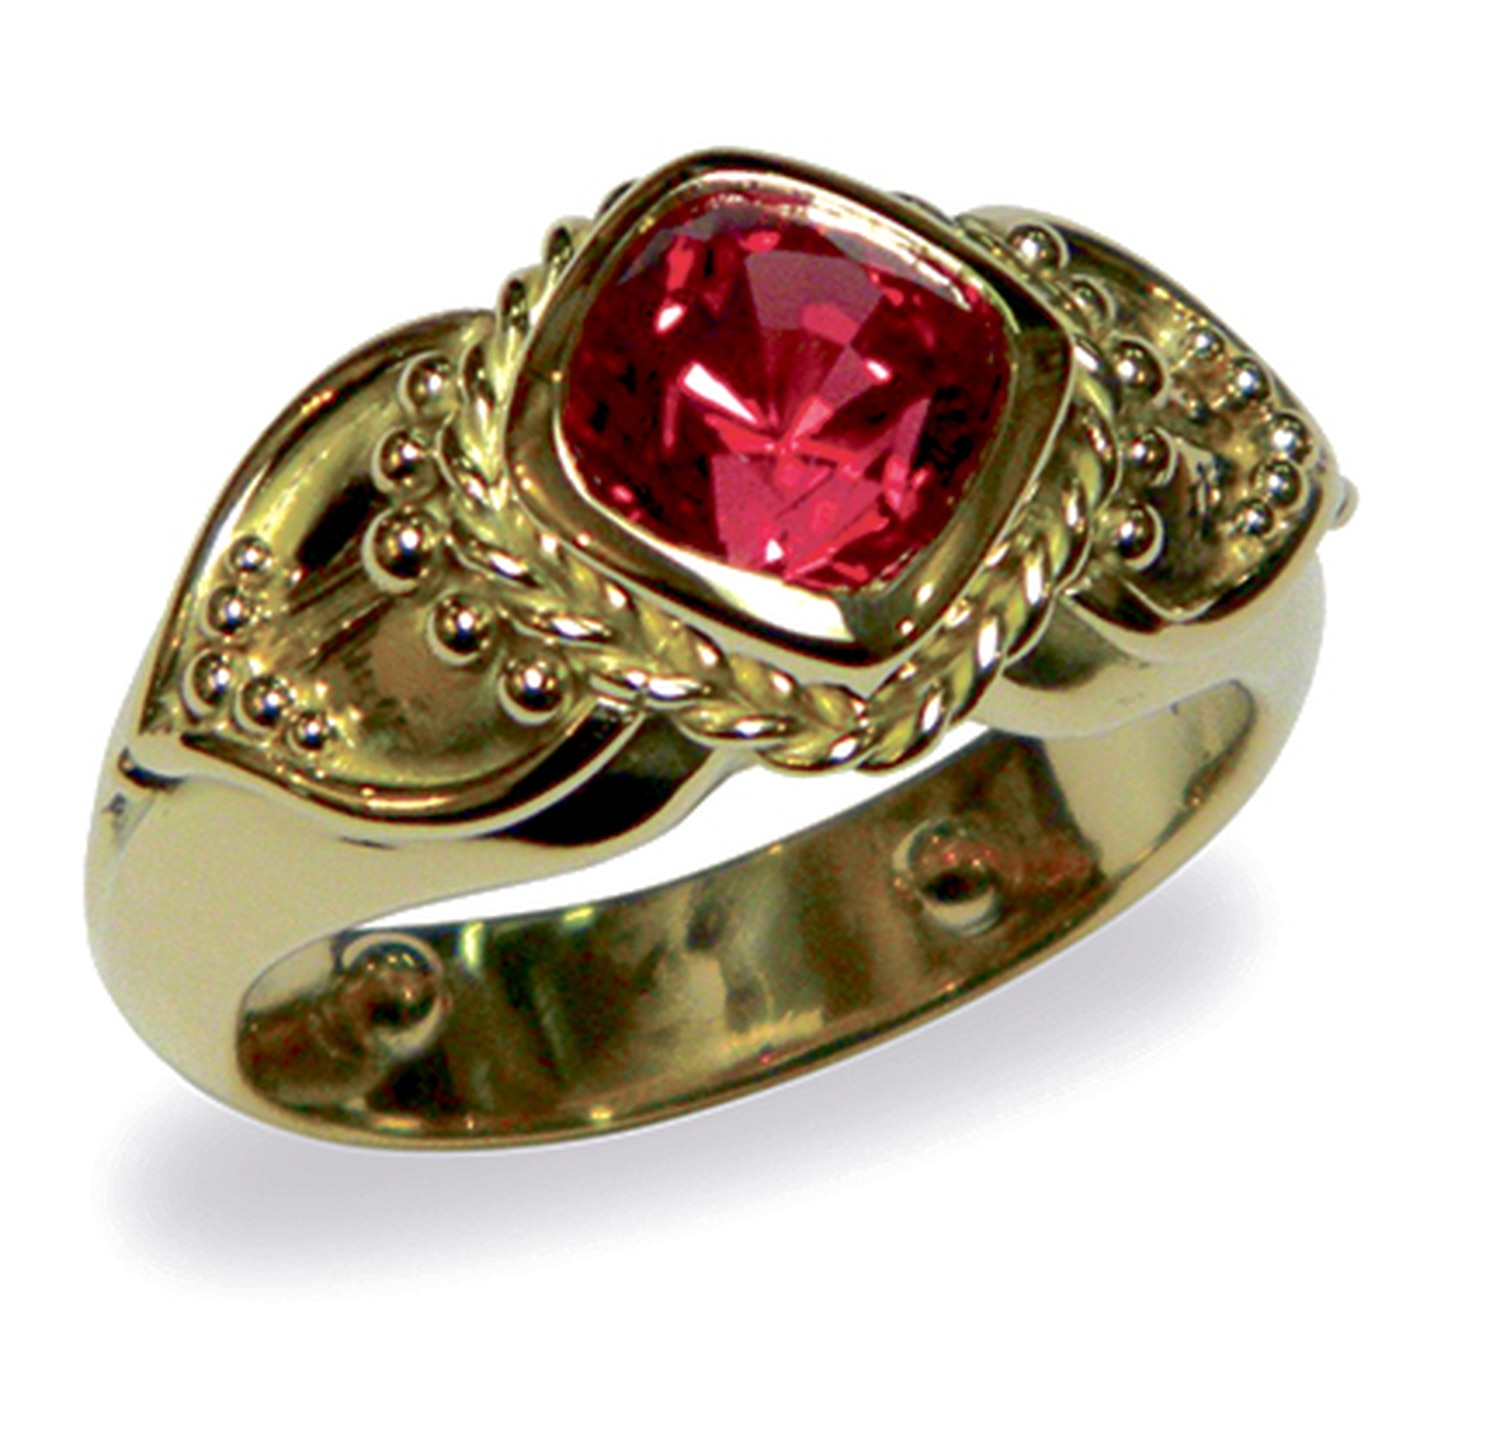 A ring from Marc Howard features an Ayervedic stone